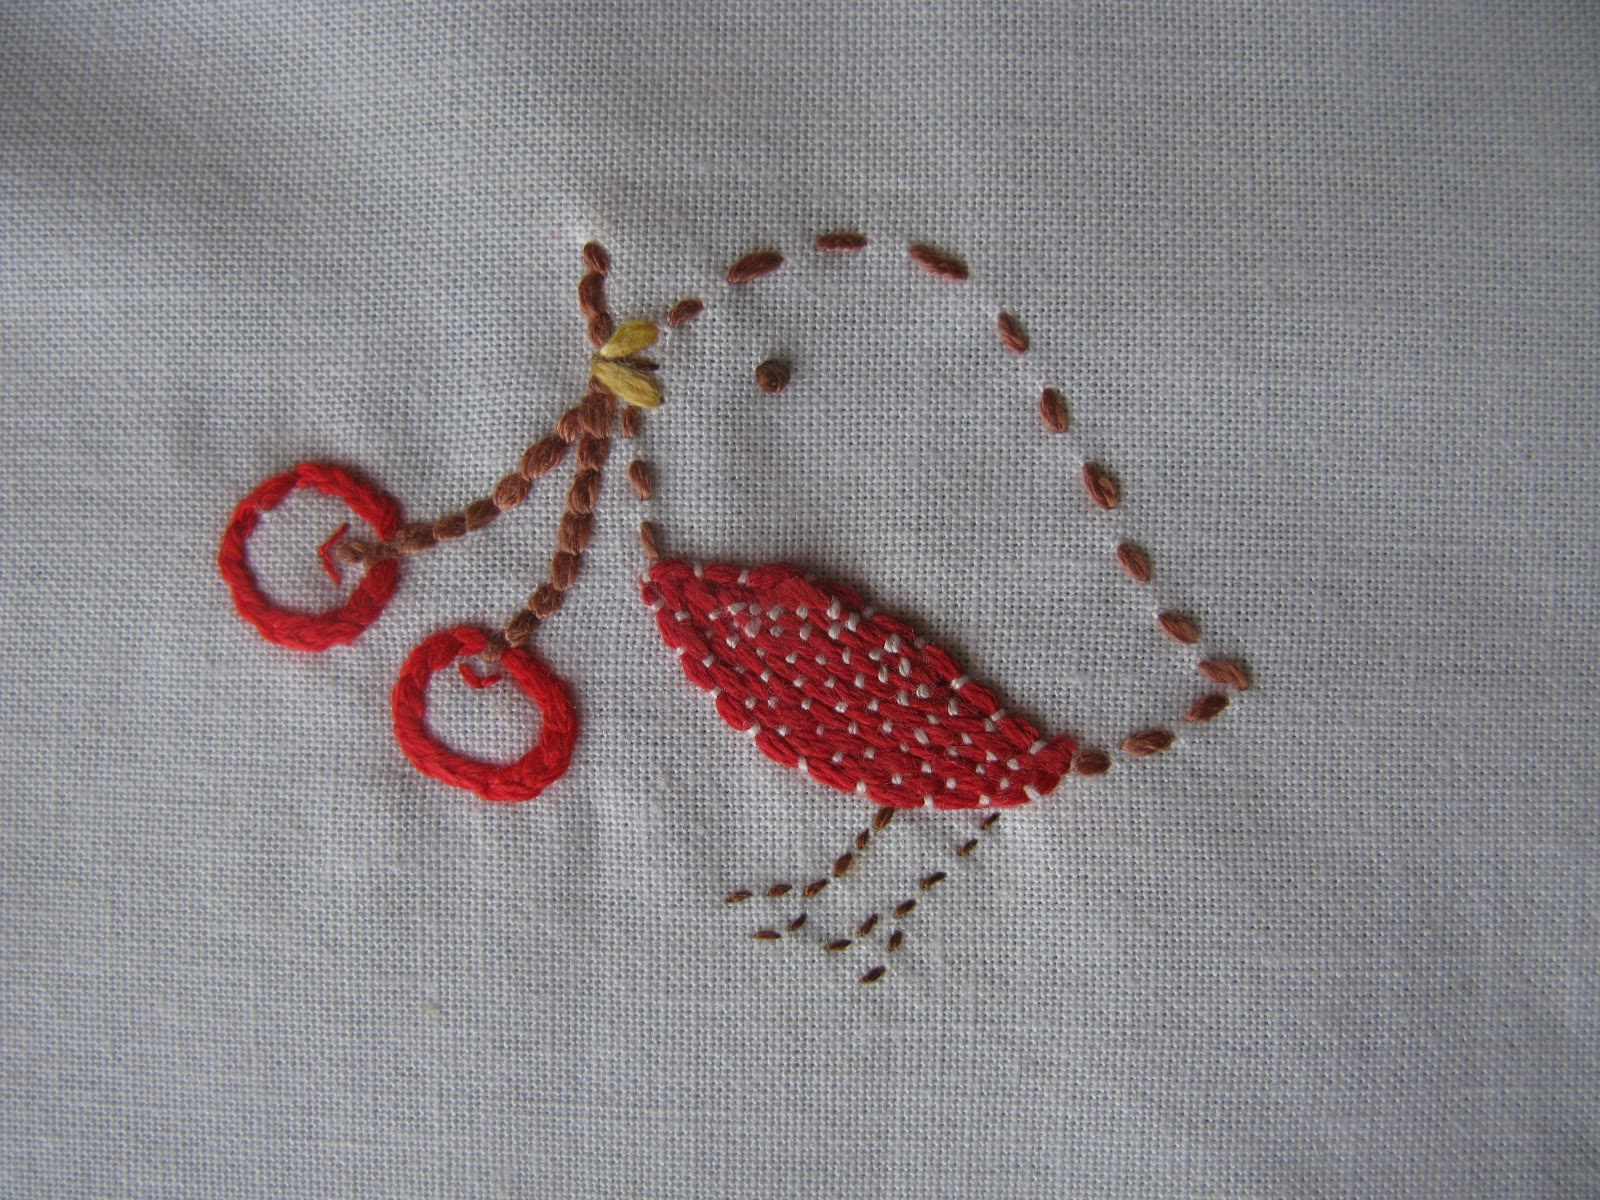 simple robin embroidery holding cherries in its beak